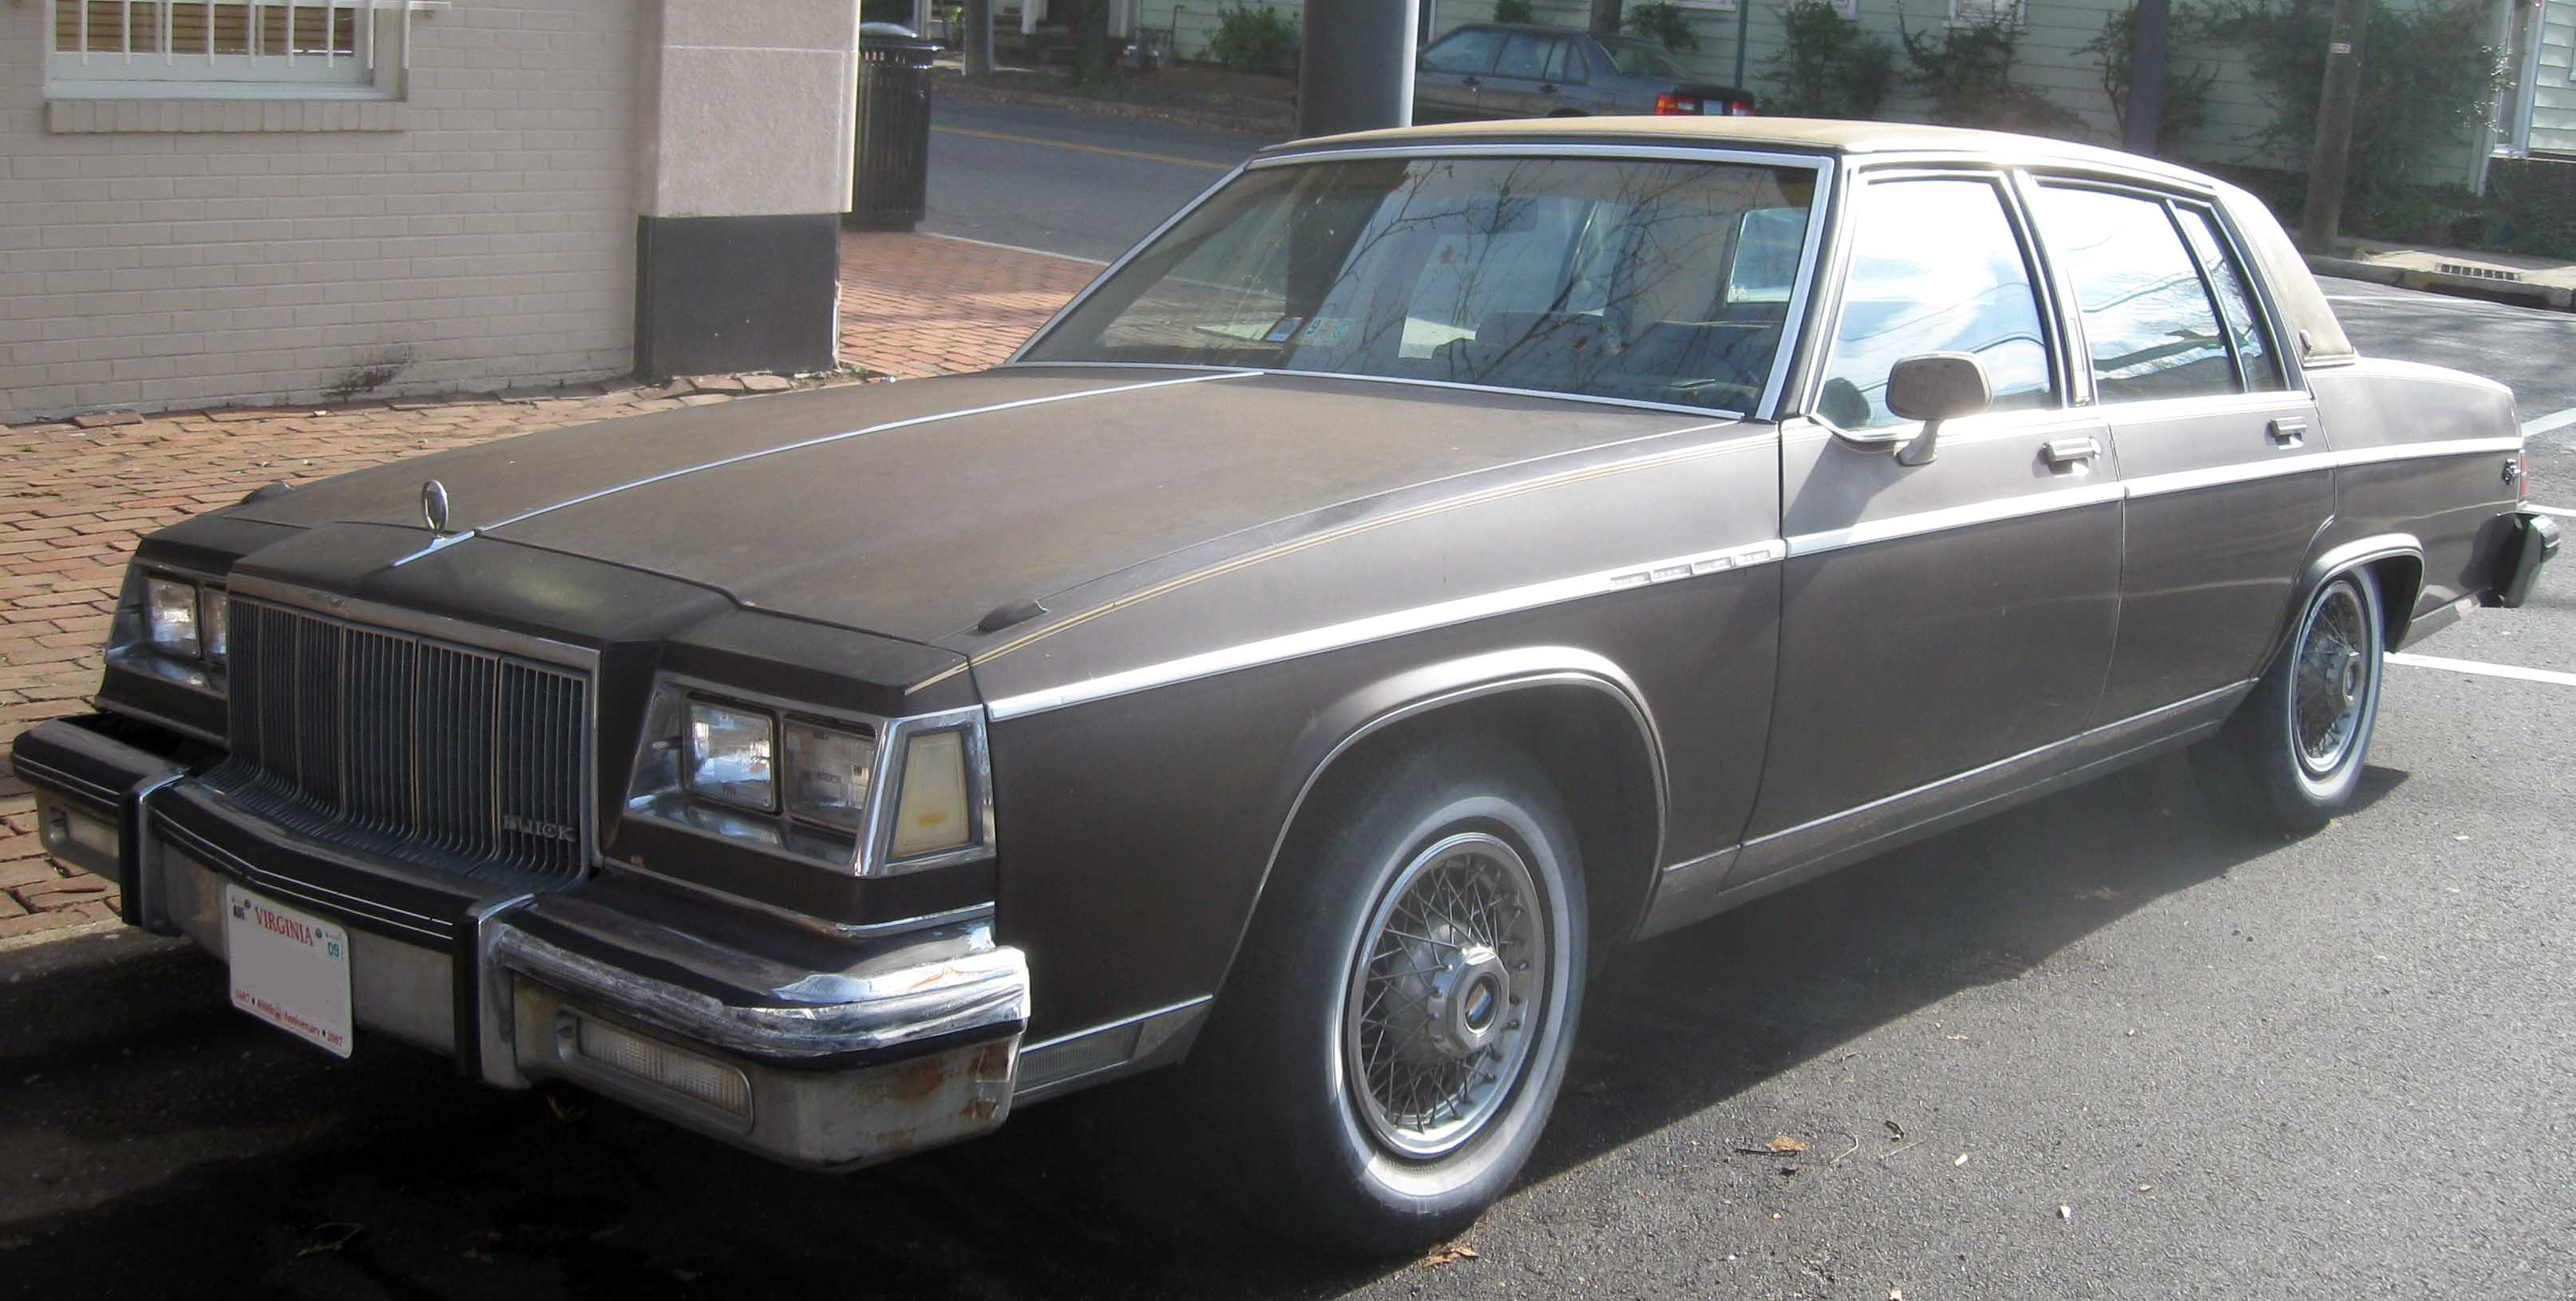 buick park avenue sedan-pic. 1